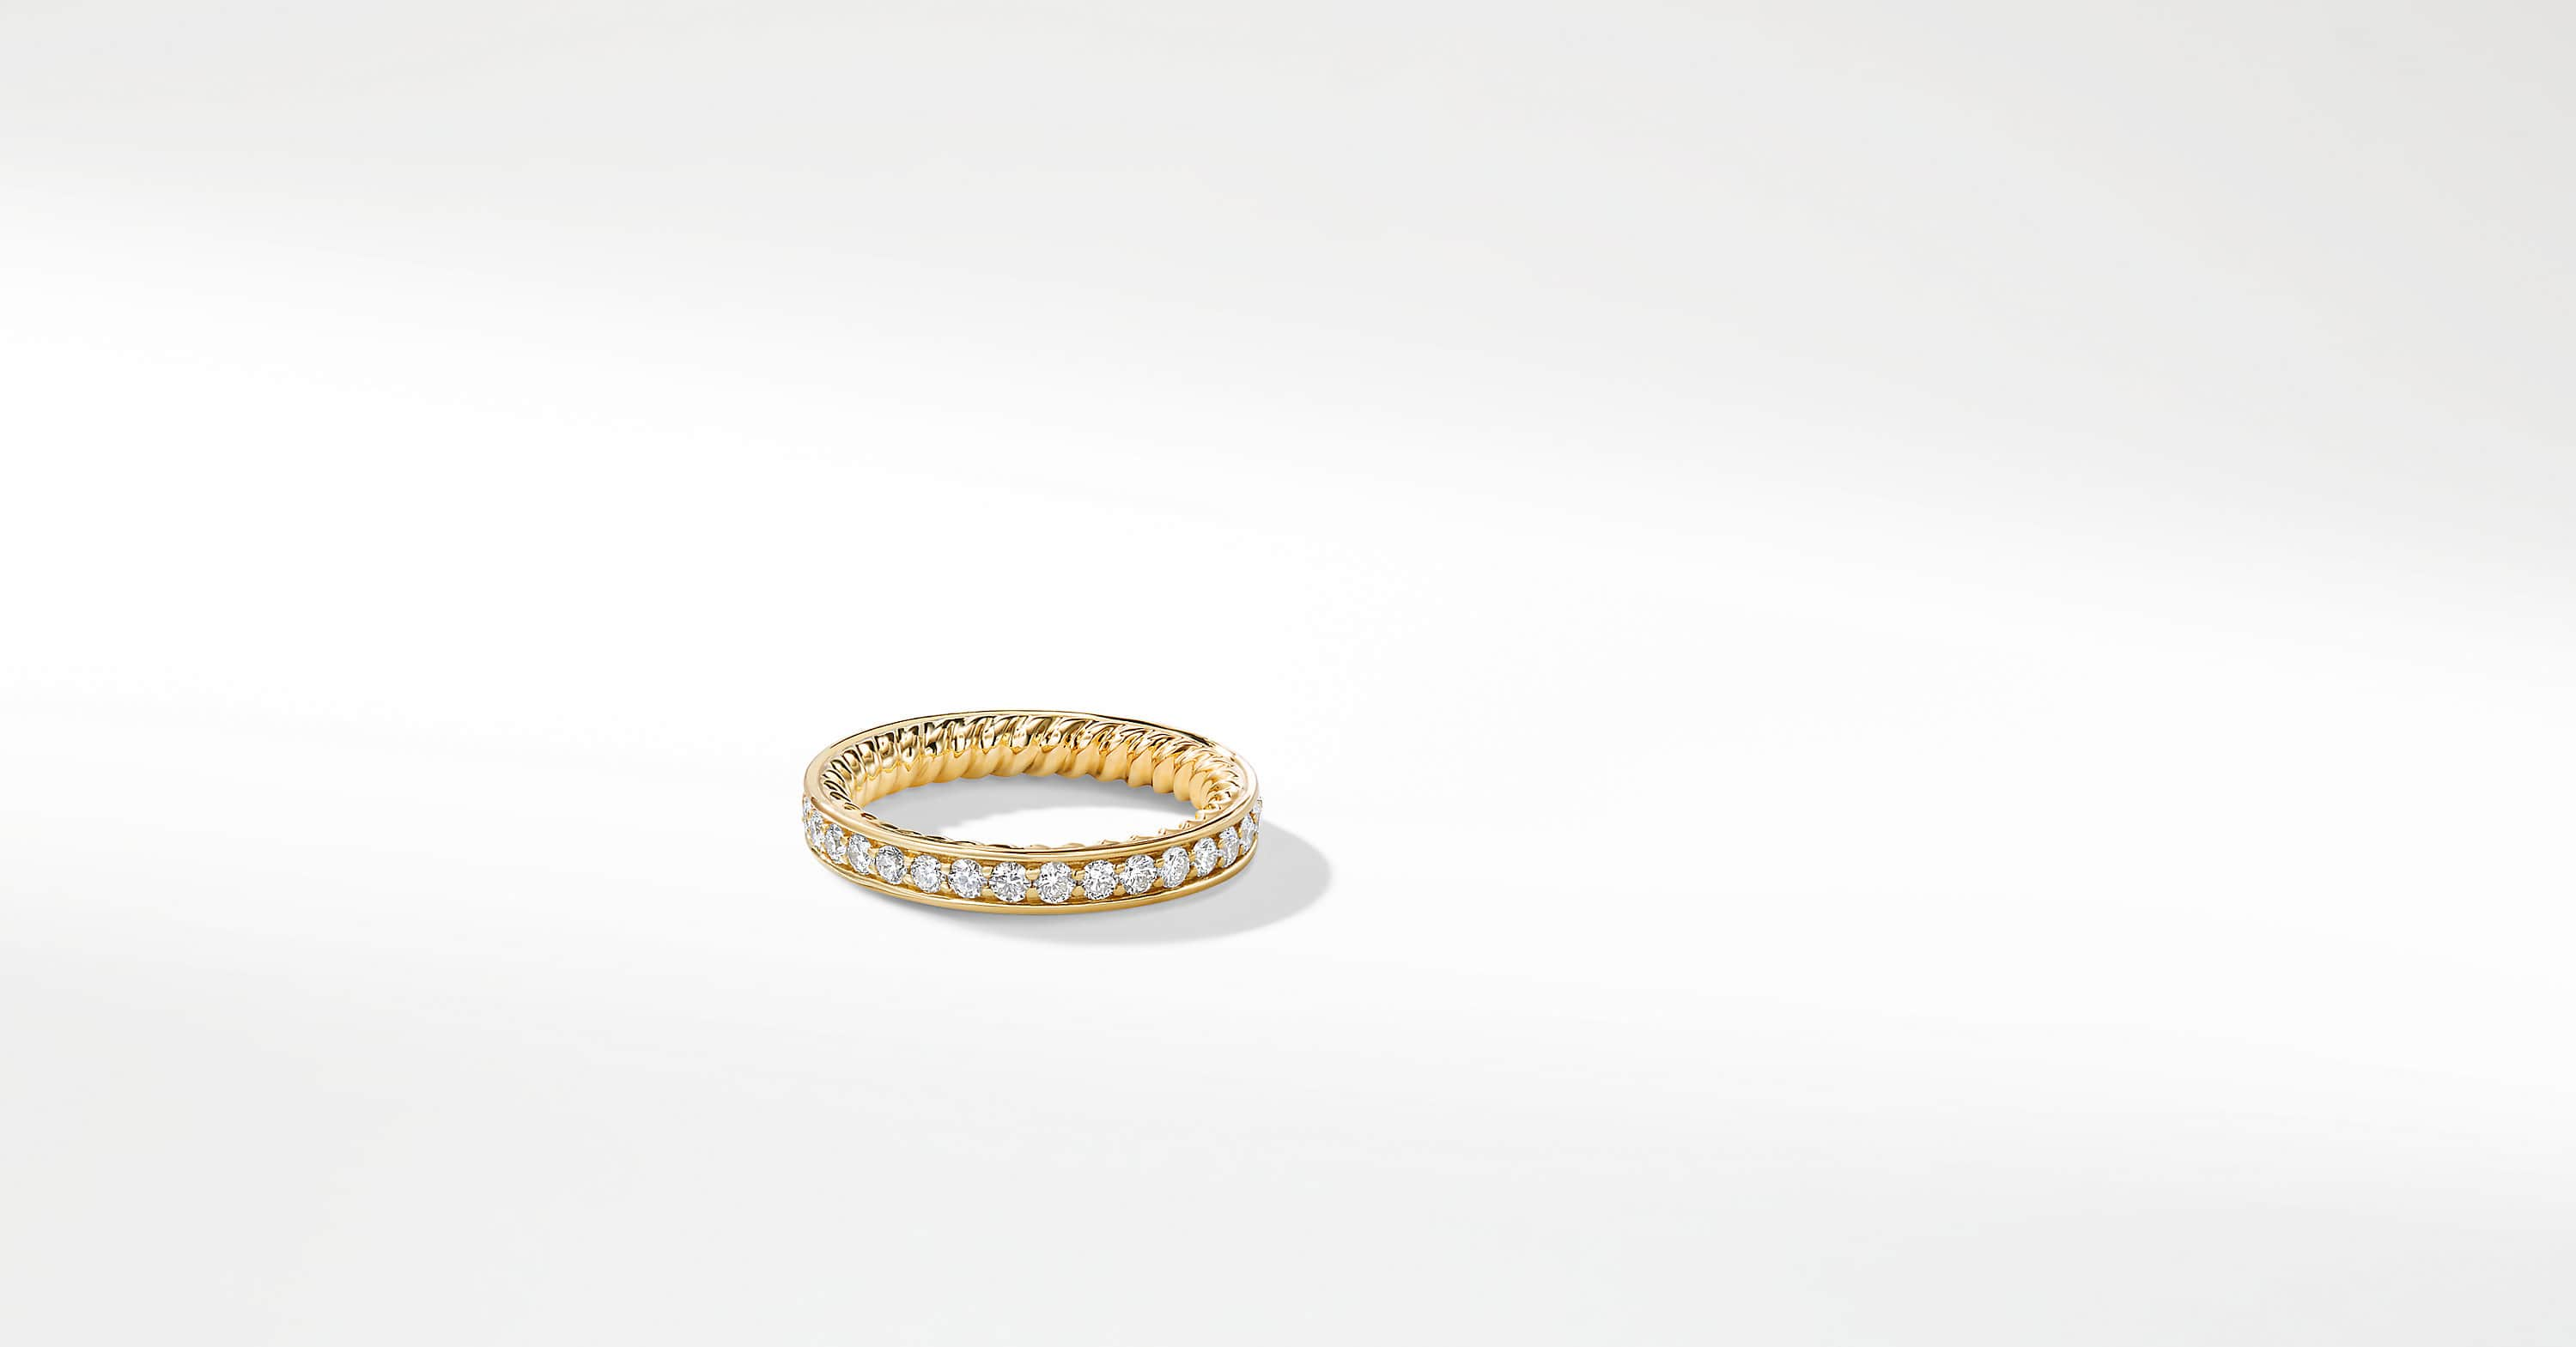 DY Eden Eternity Wedding Band with Diamonds in 18K Gold, 3mm